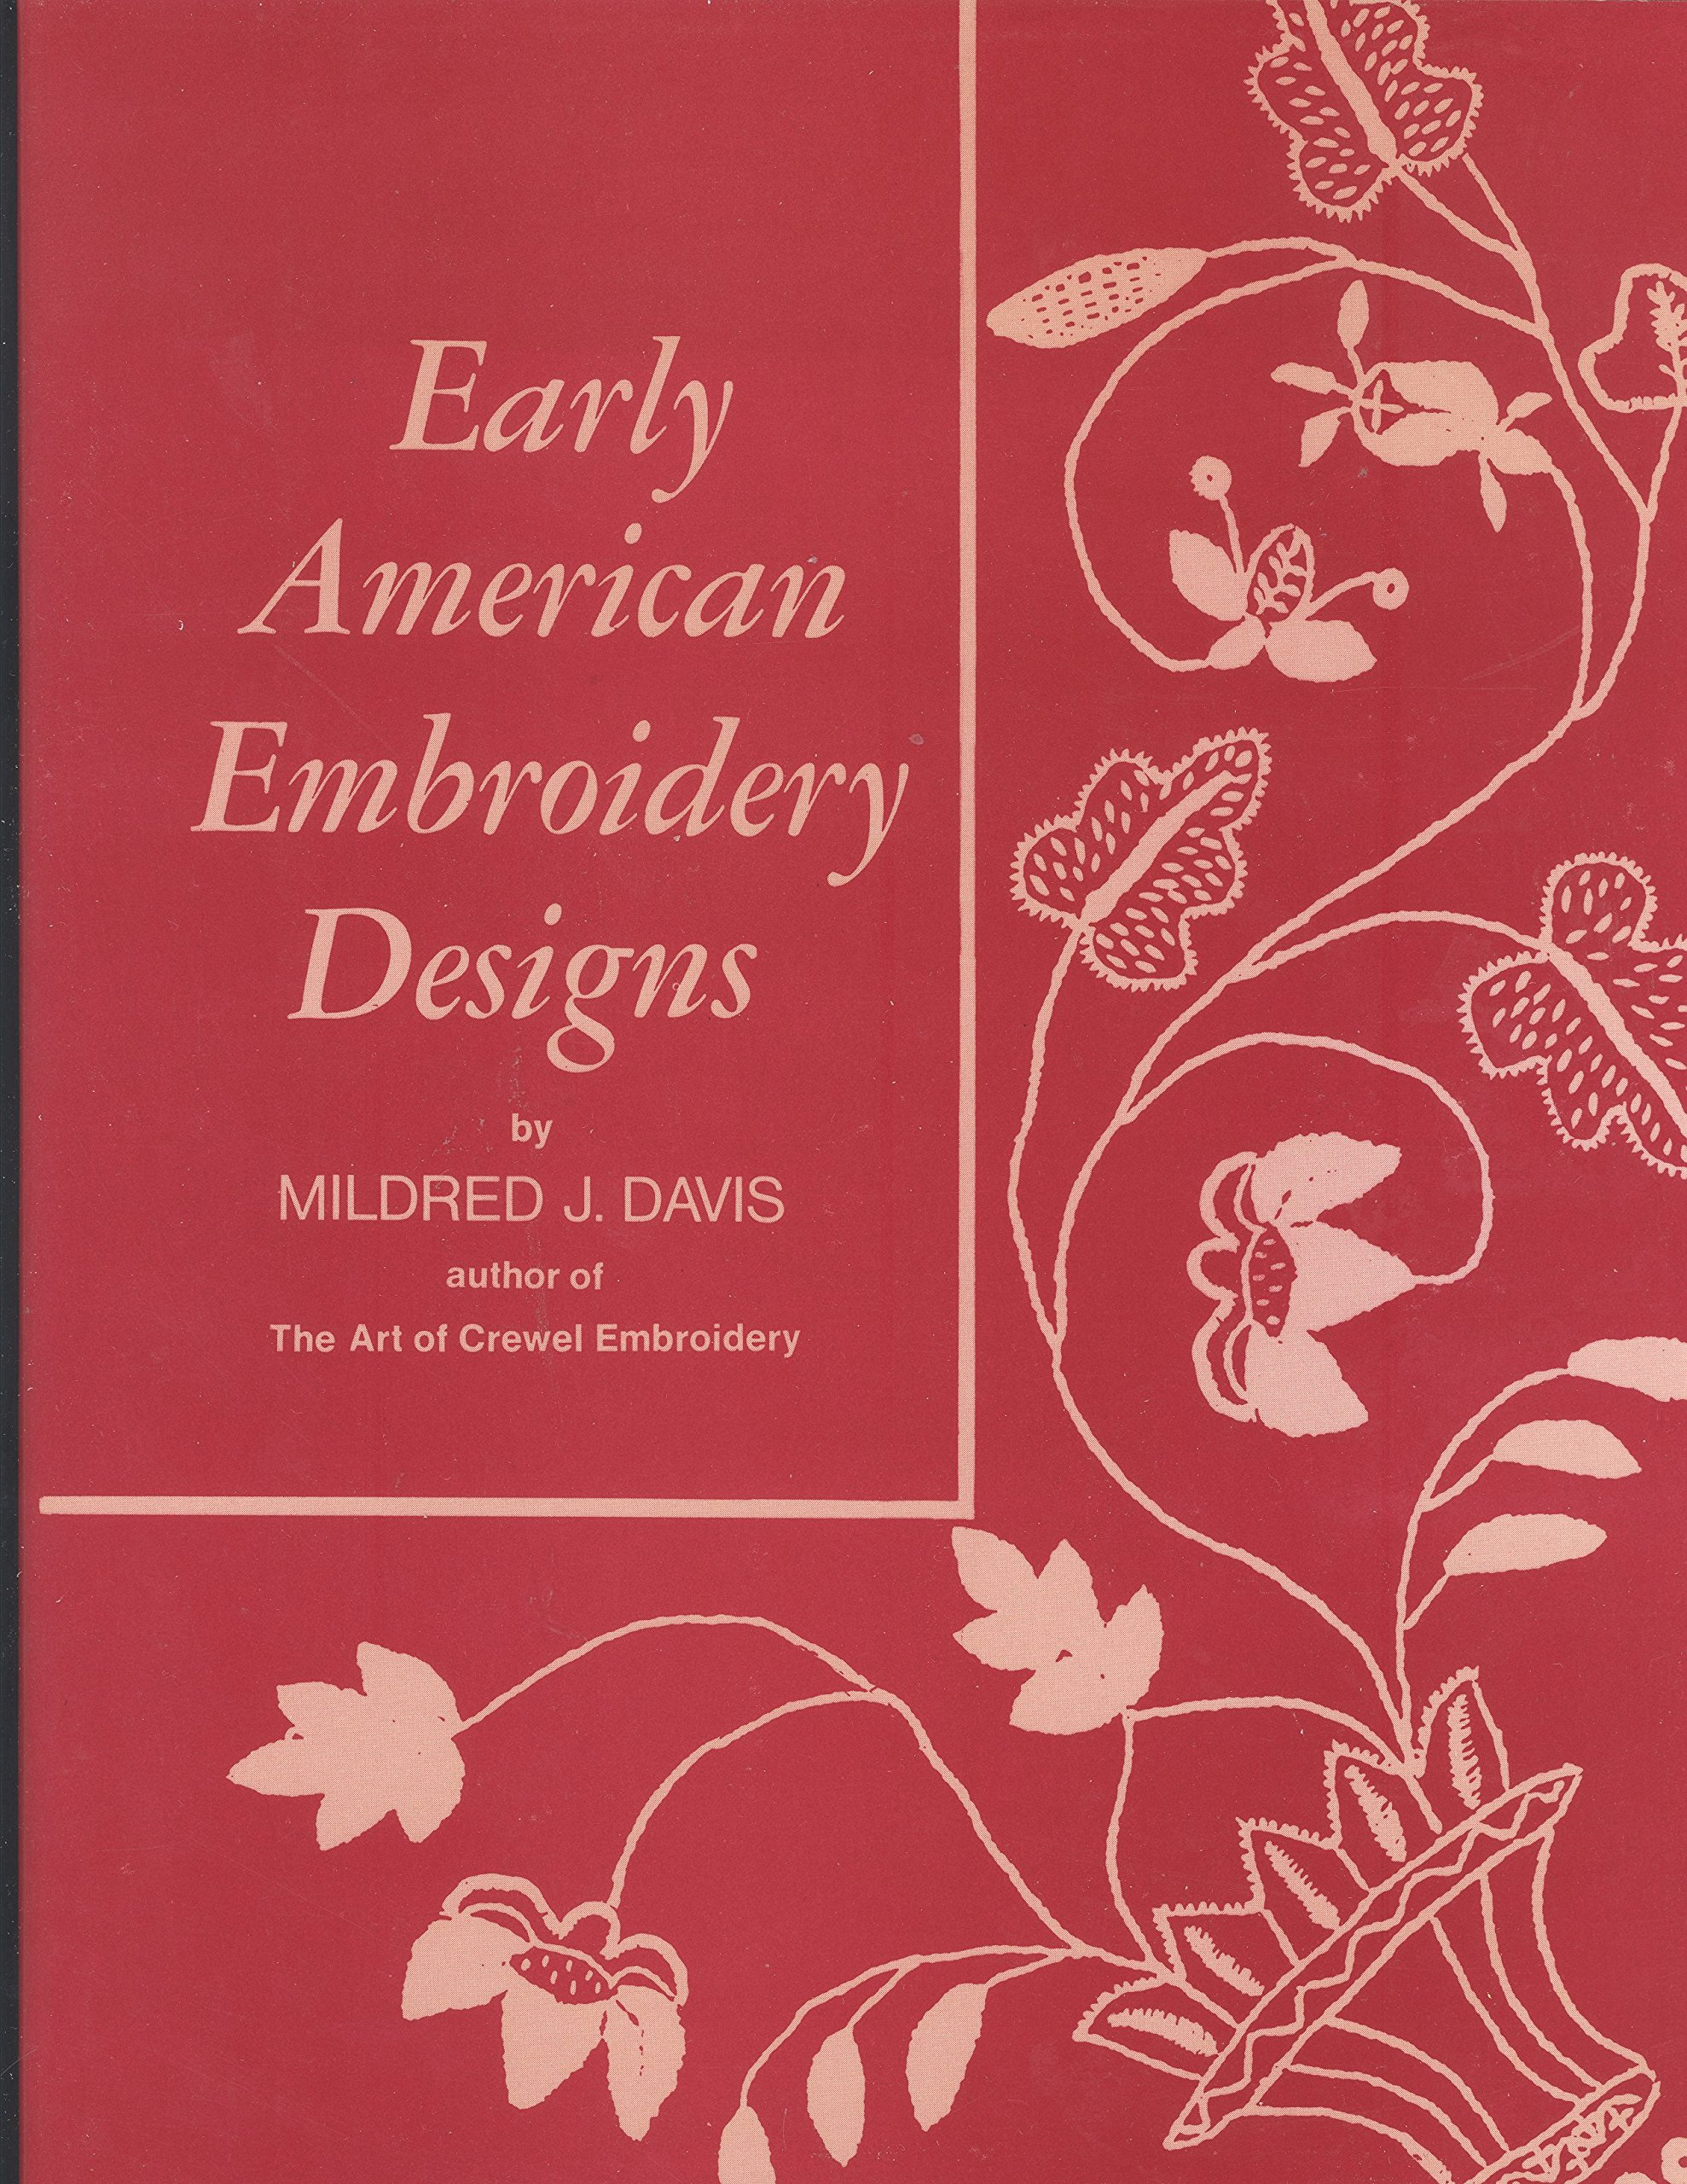 Early American Embroidery Designs